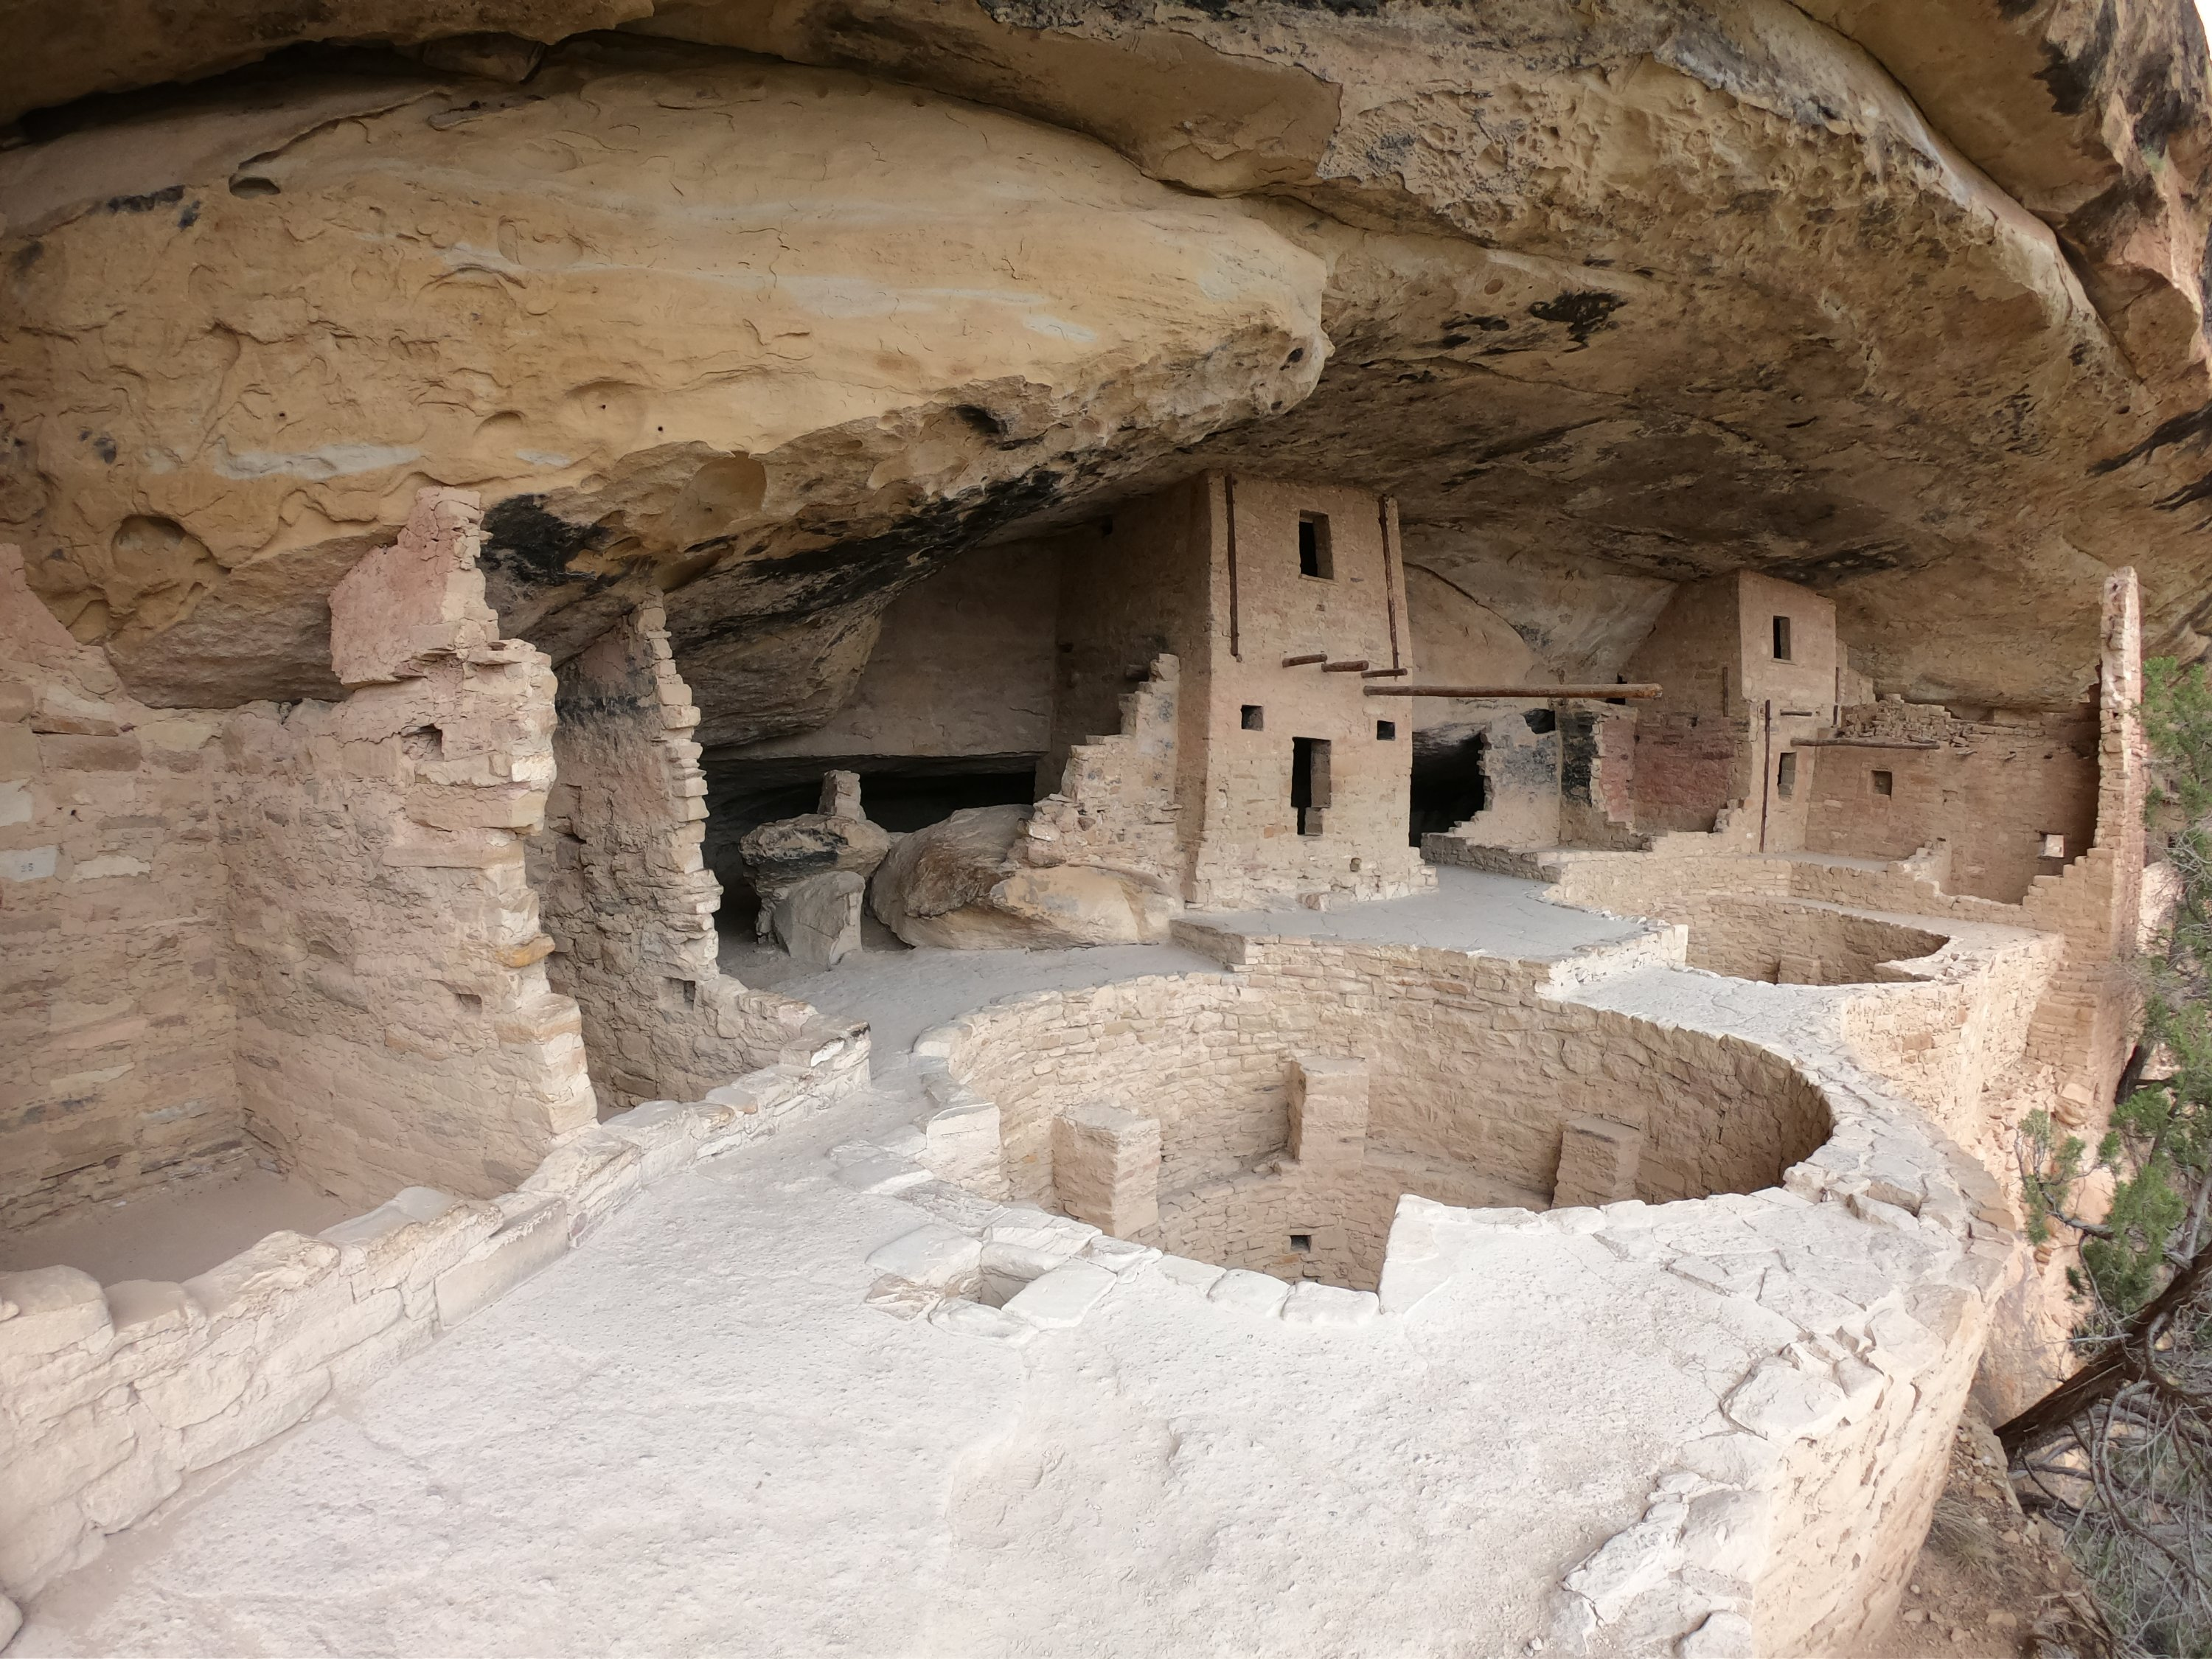 Balcony House(s) - Mesa Verde National Park